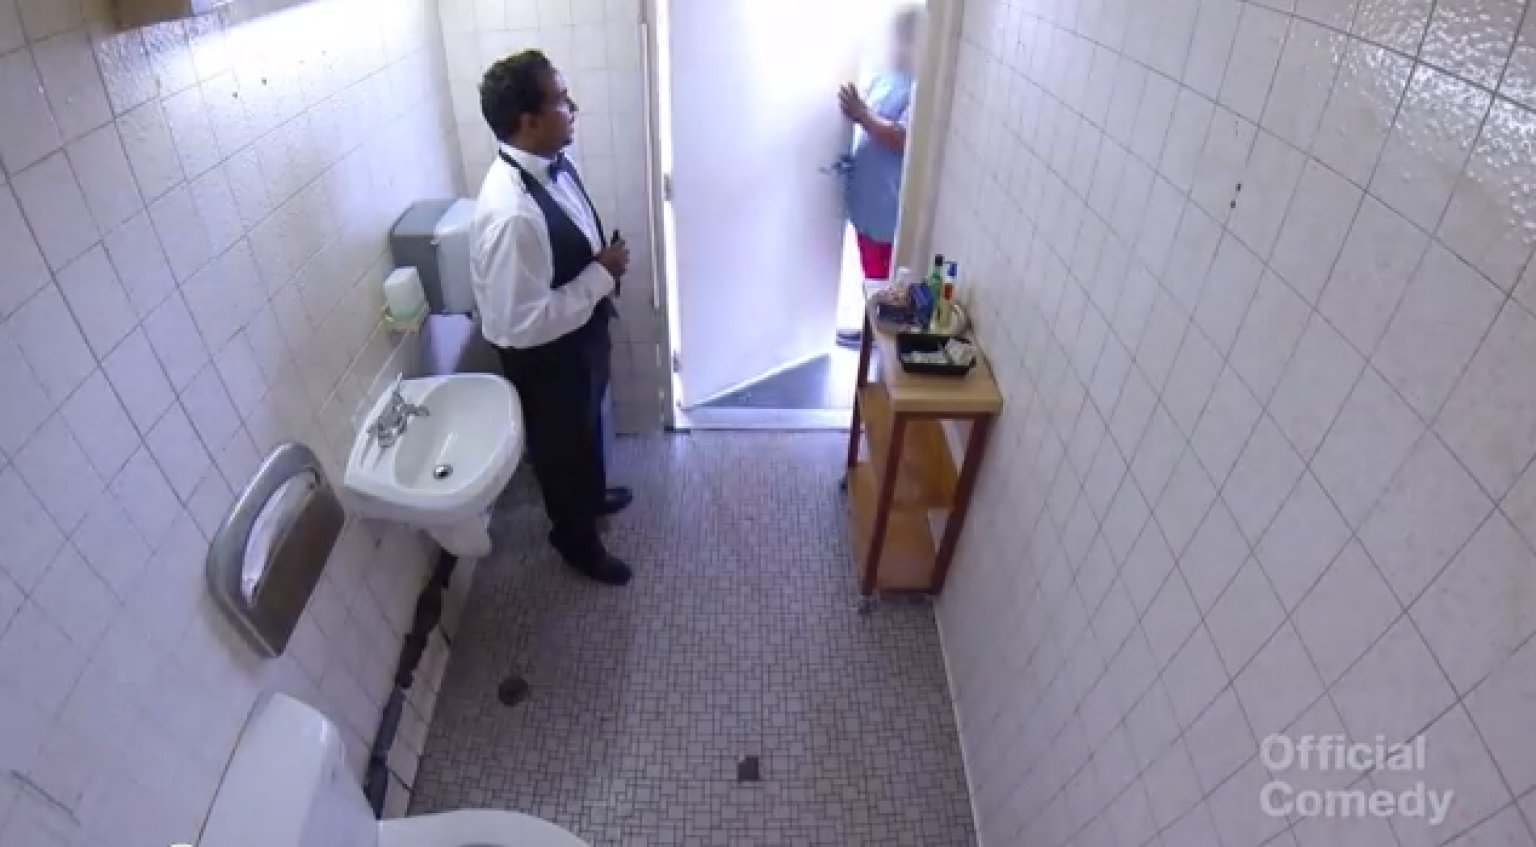 Restroom Attendant Prank Makes Gas Station Bathroom Fancy ...